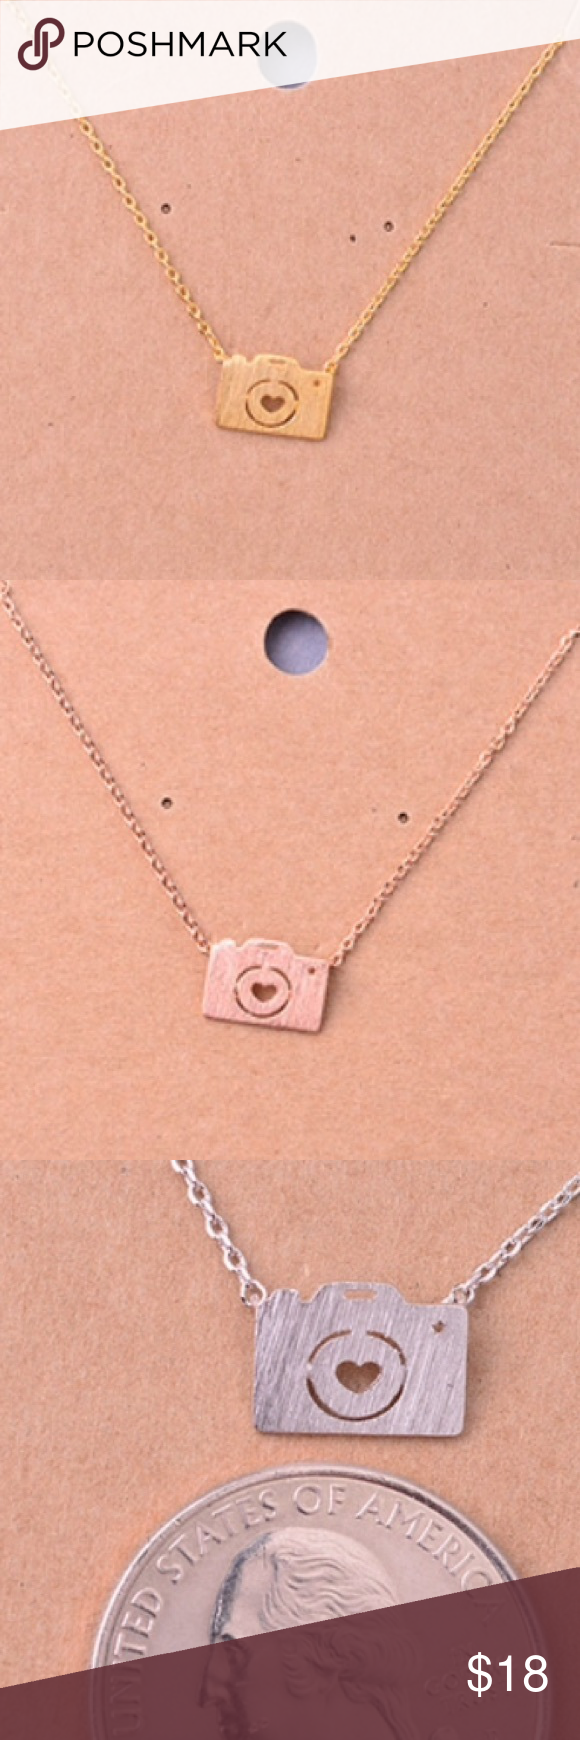 "Camera Necklace Very cute! I'm really into these small necklaces for some reason. Gold tone mini camera pendant necklace. Short necklace about 16"" chain. Also available in rose gold tone. This item is available! Jewelry Necklaces"